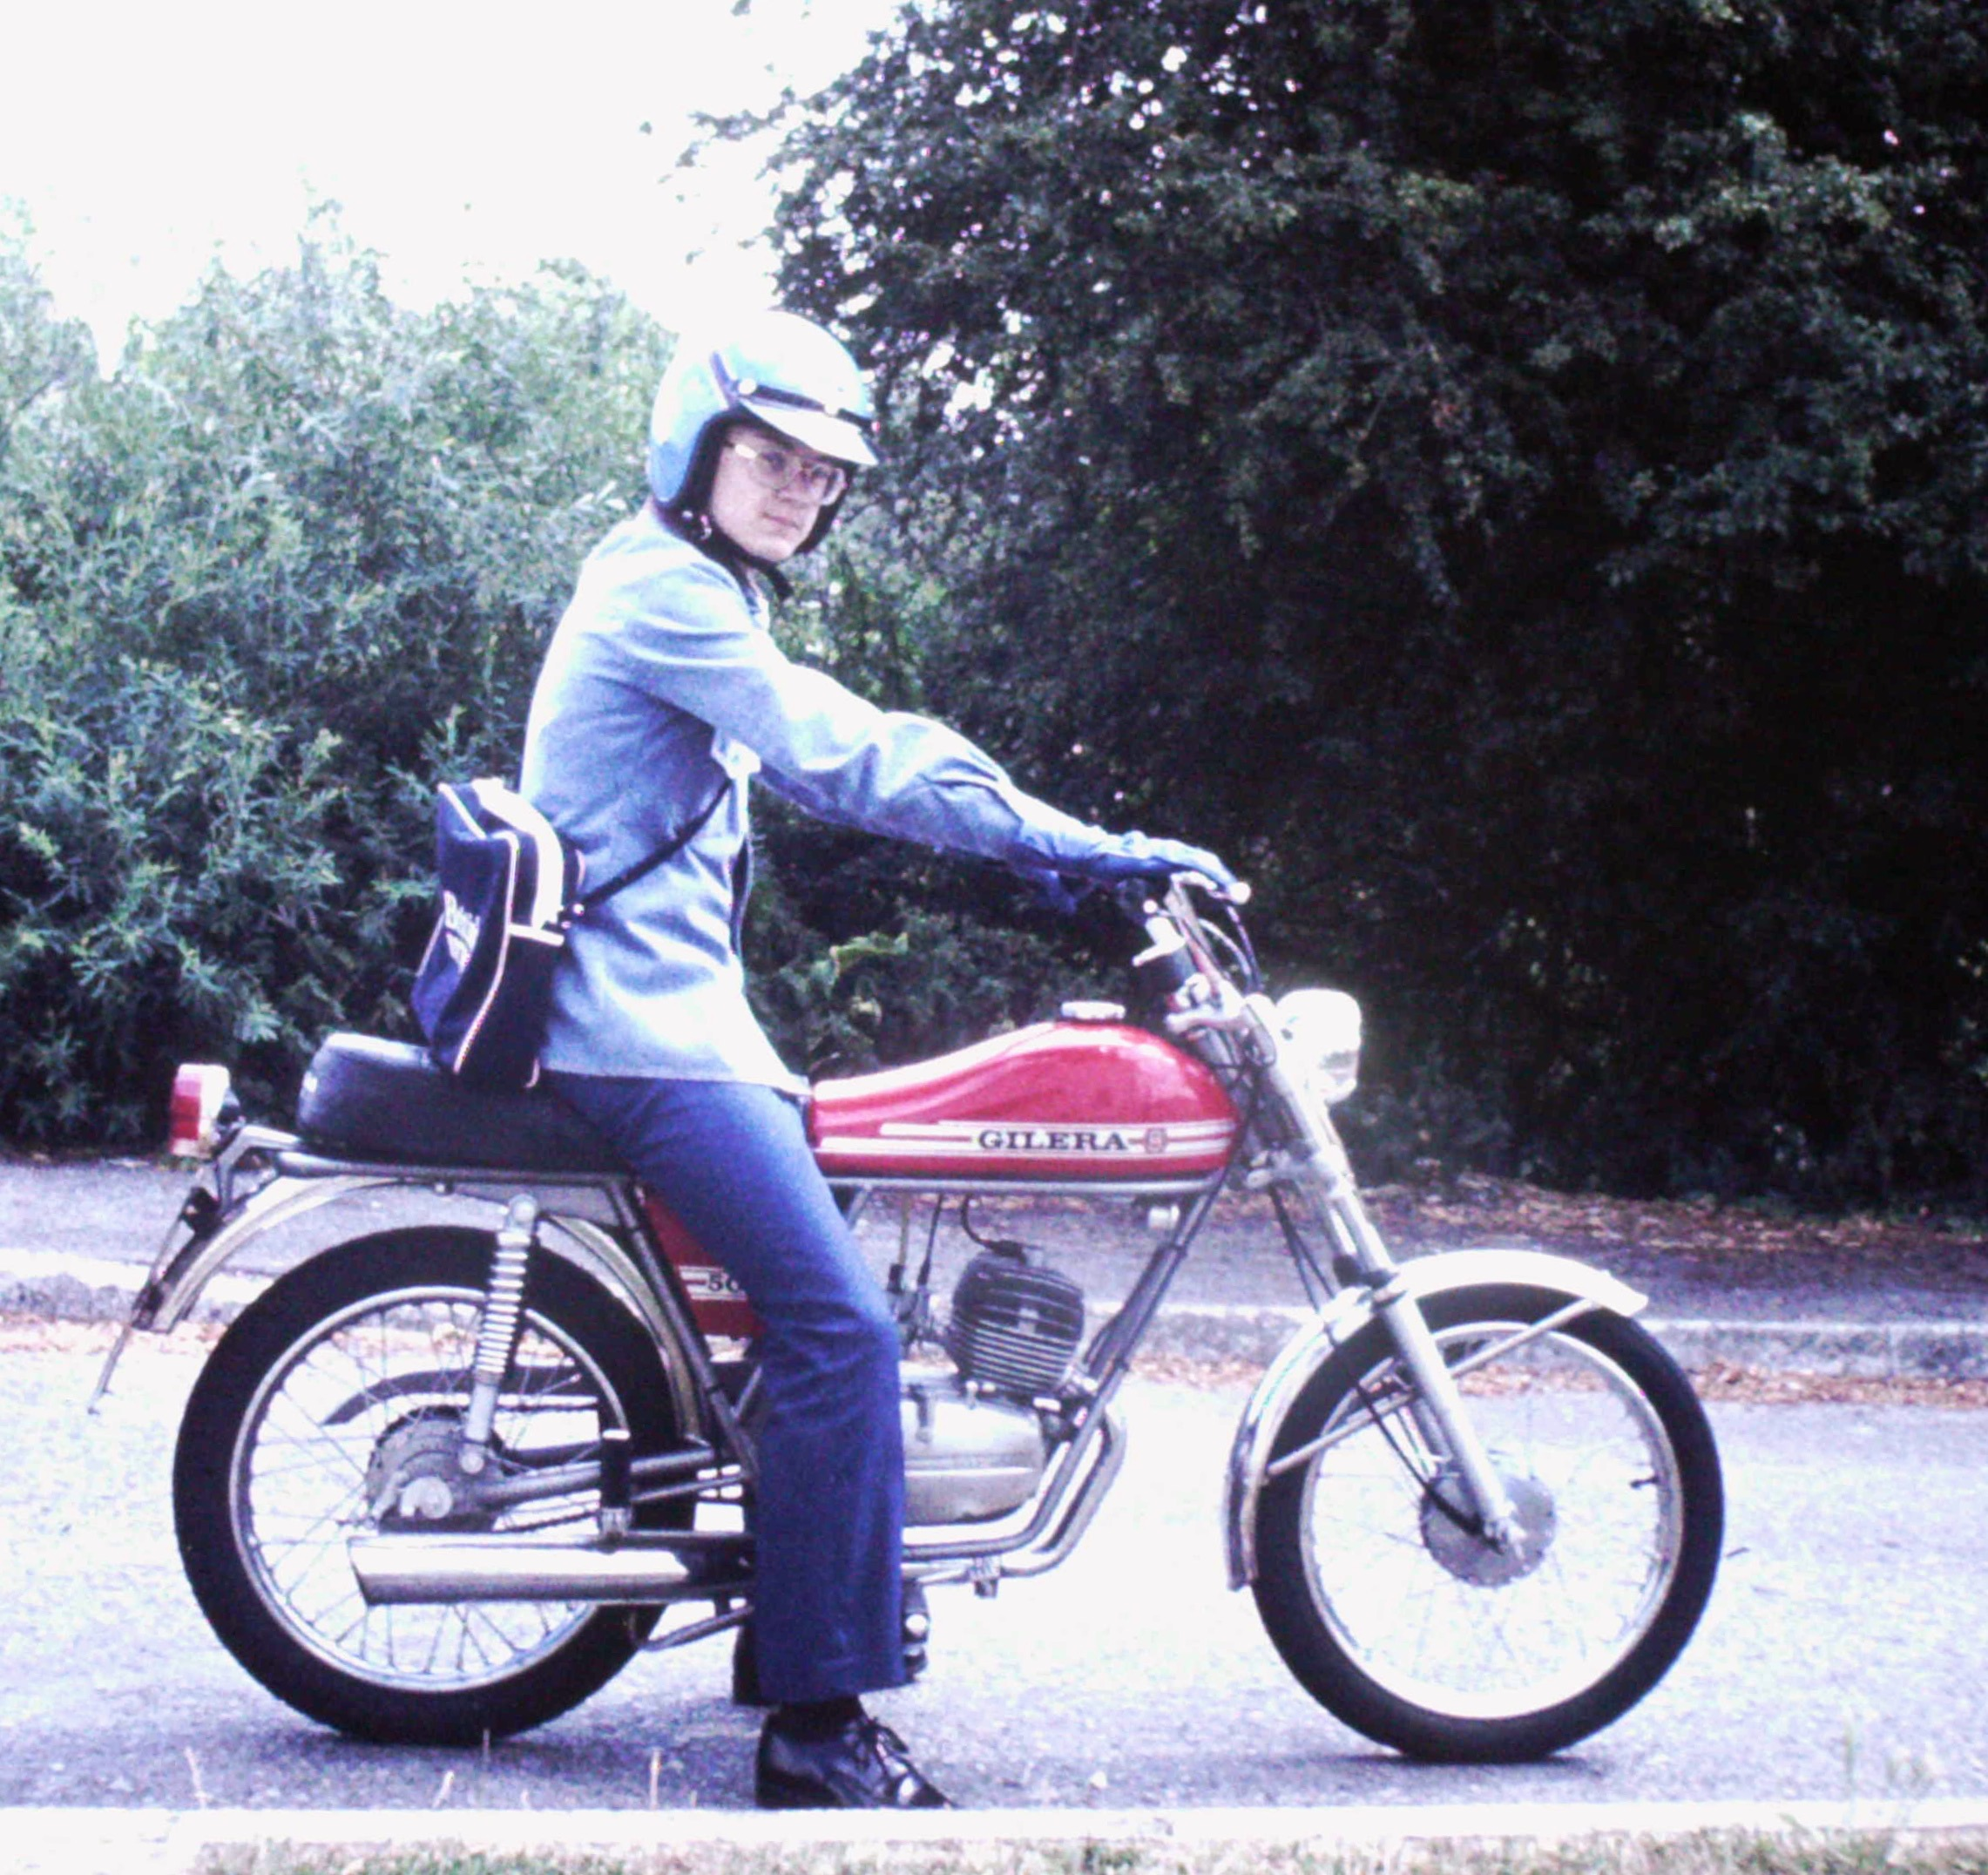 My double denim clad brother Mark sat astride his red Gilera 50 moped wearing a white open faced helmet and with a white sports bag over his shoulder